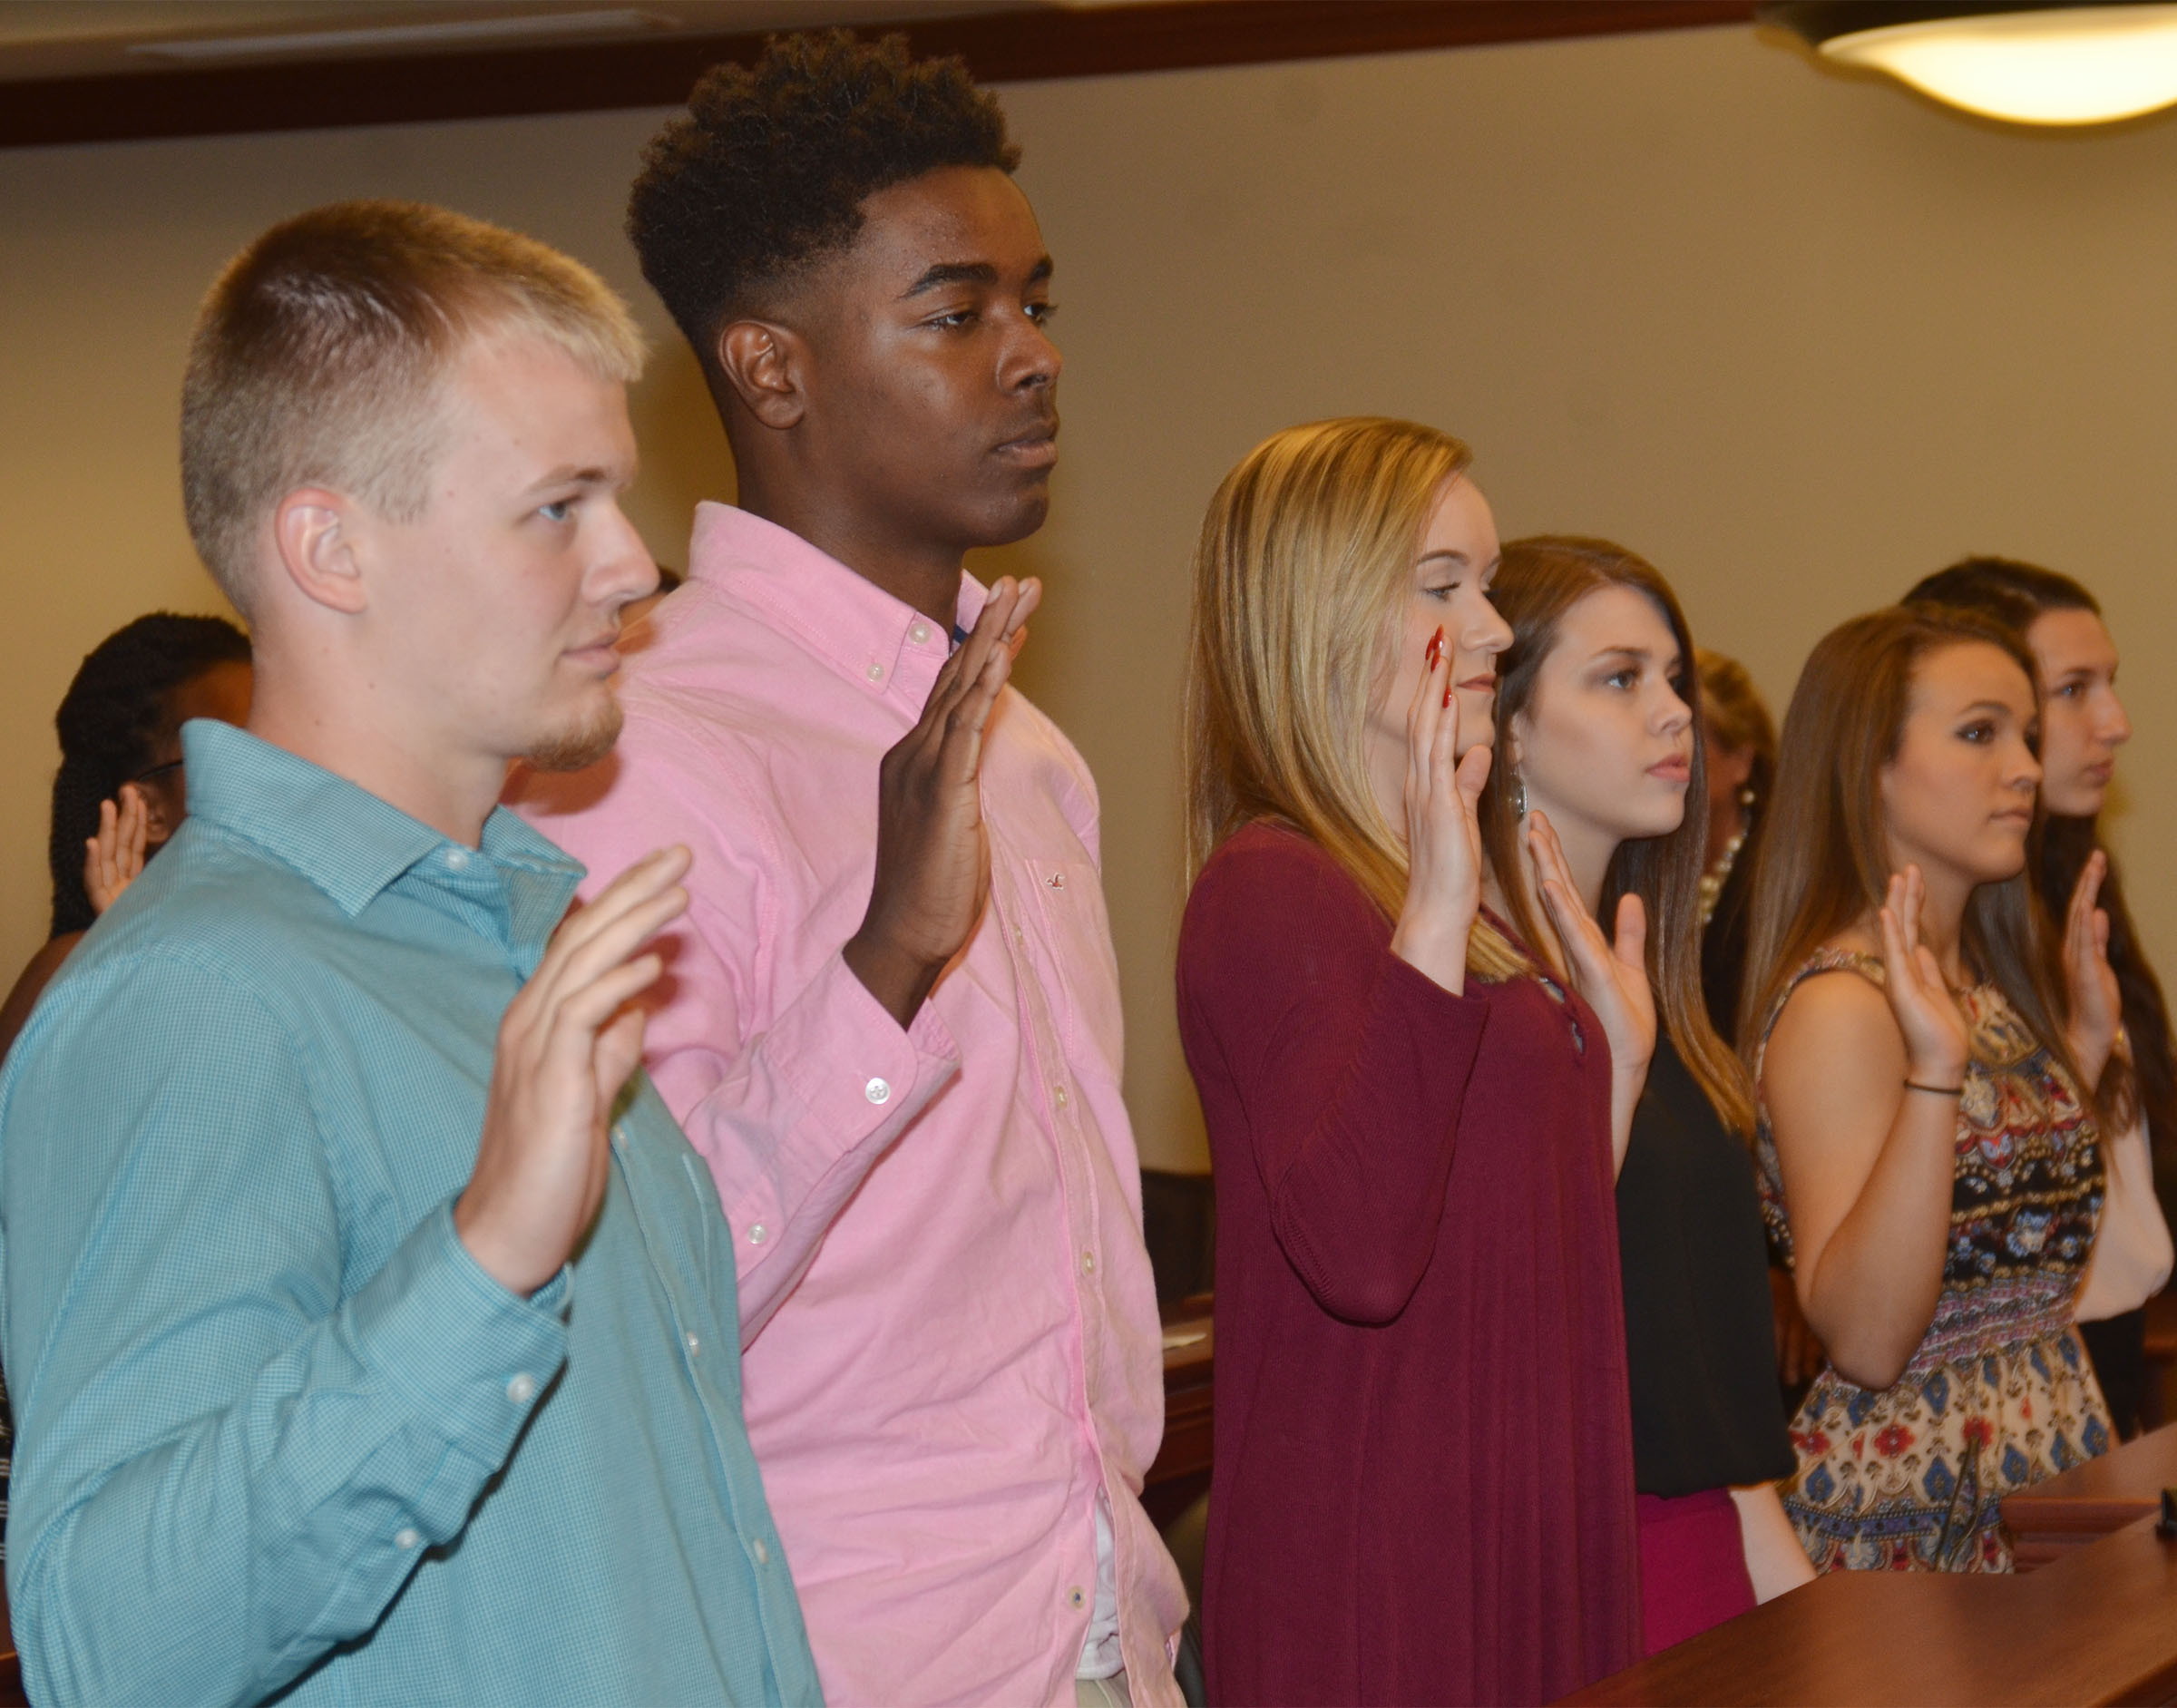 CHS juniors Wyatt Houk and Chanson Atkinson, at left, are sworn in as jurors during the mock trial.